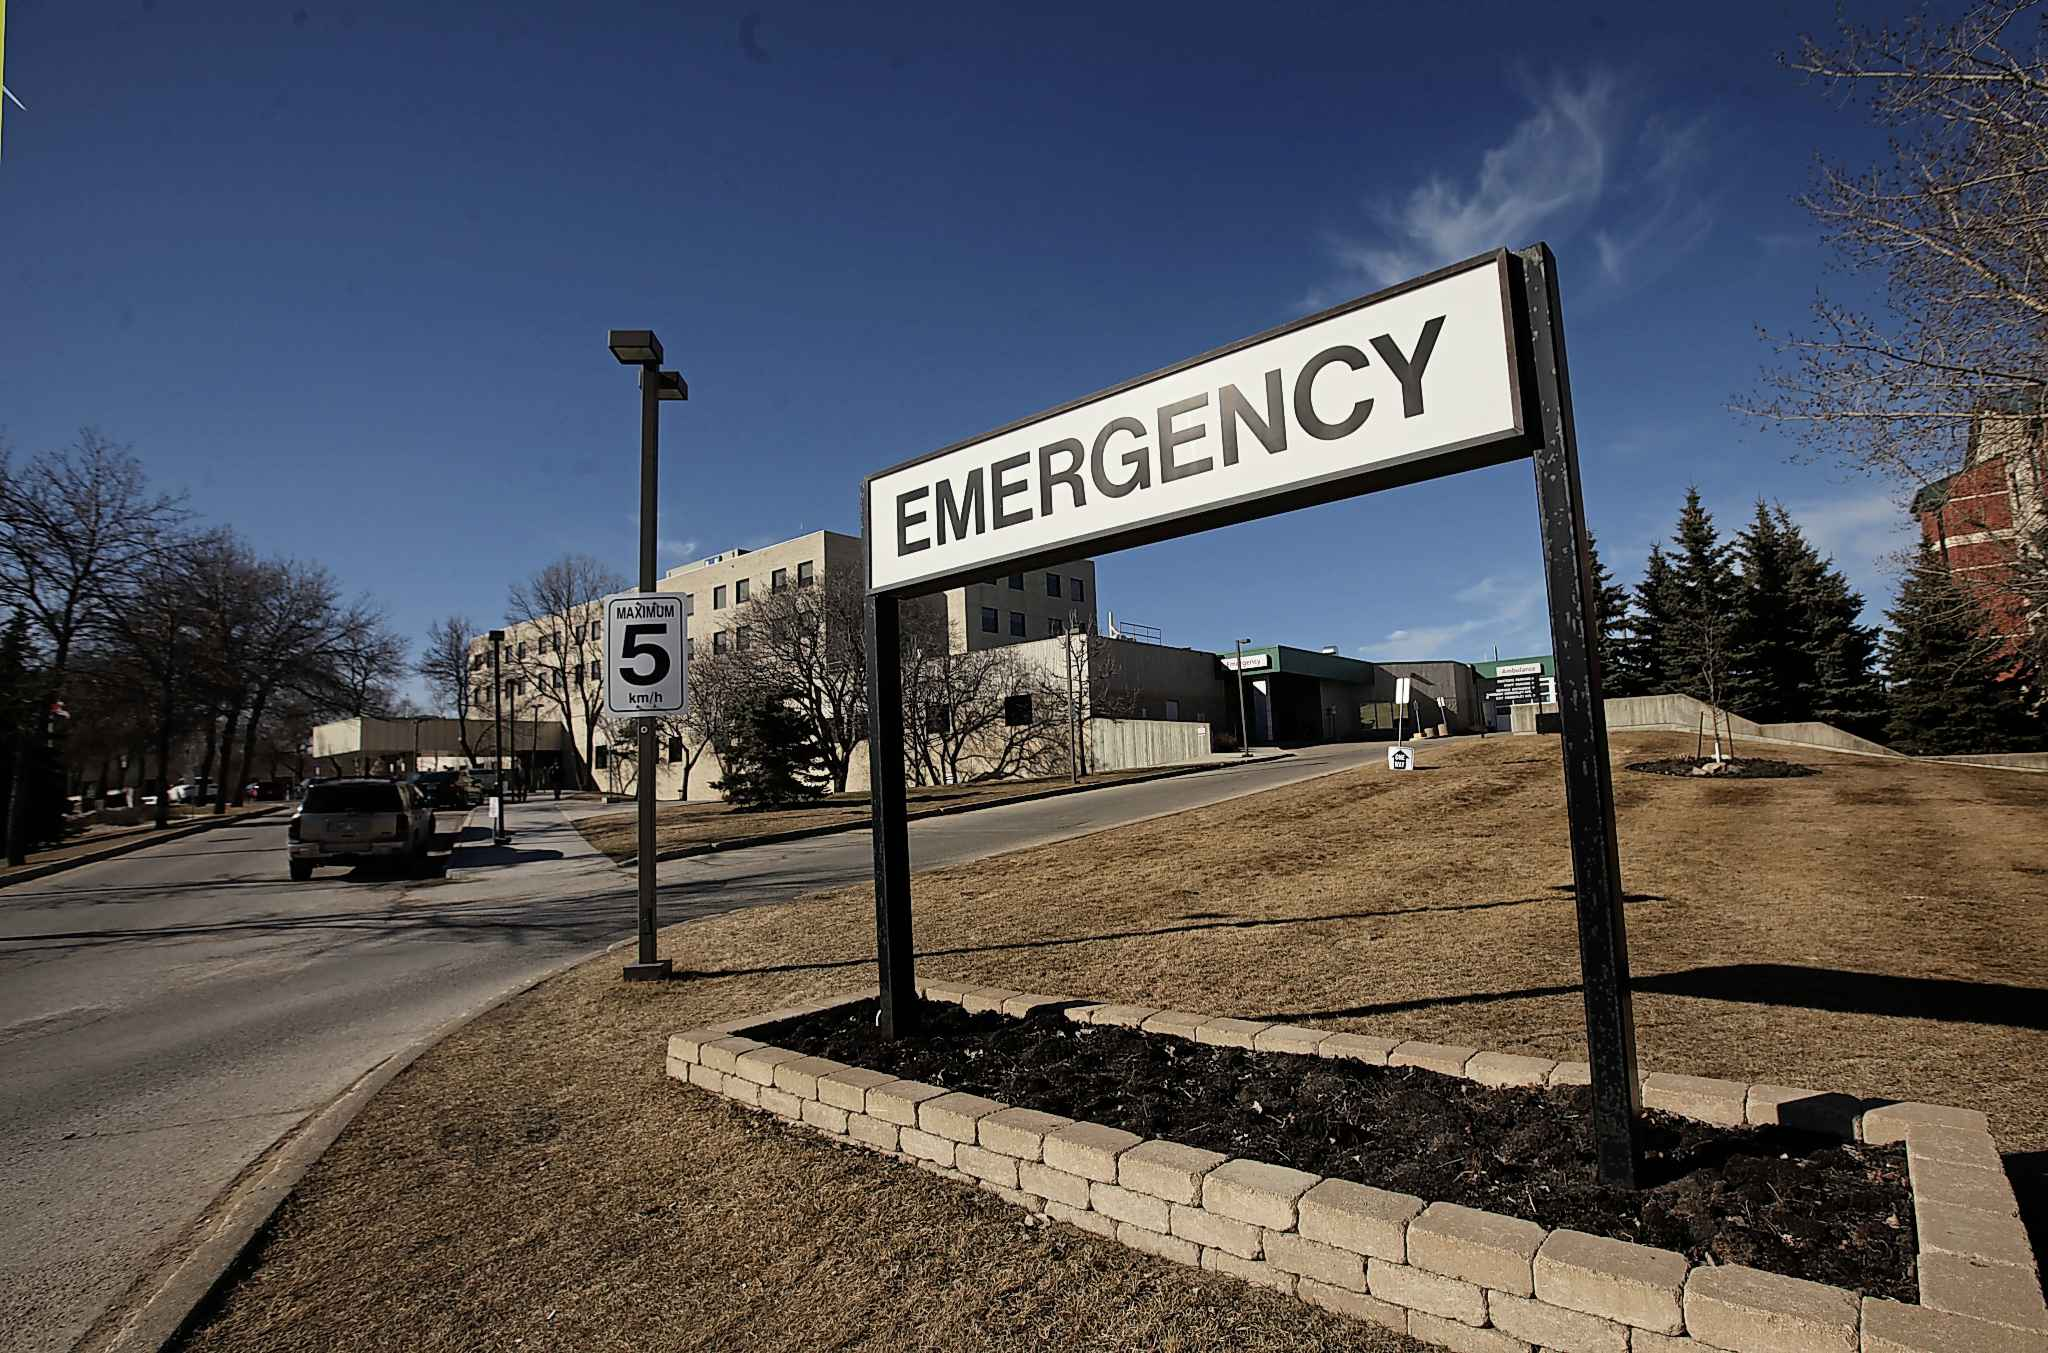 Sources say the provincial government is contemplating a new treatment plan for Concordia Hospital's Emergency department, which was originally scheduled to close at the end of June.